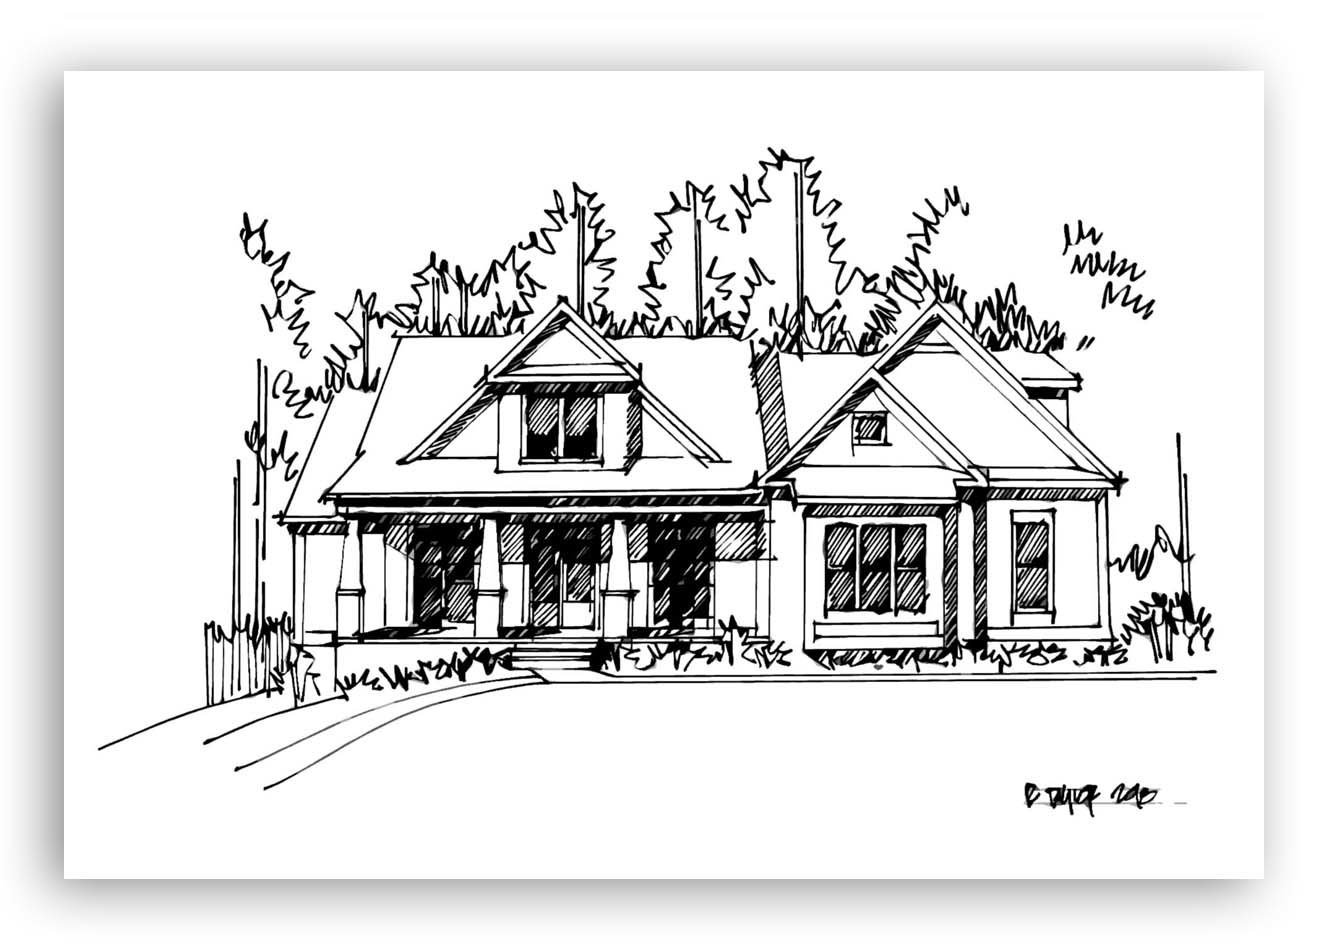 Hand-Drawn Black and White Architectural Home Sketch